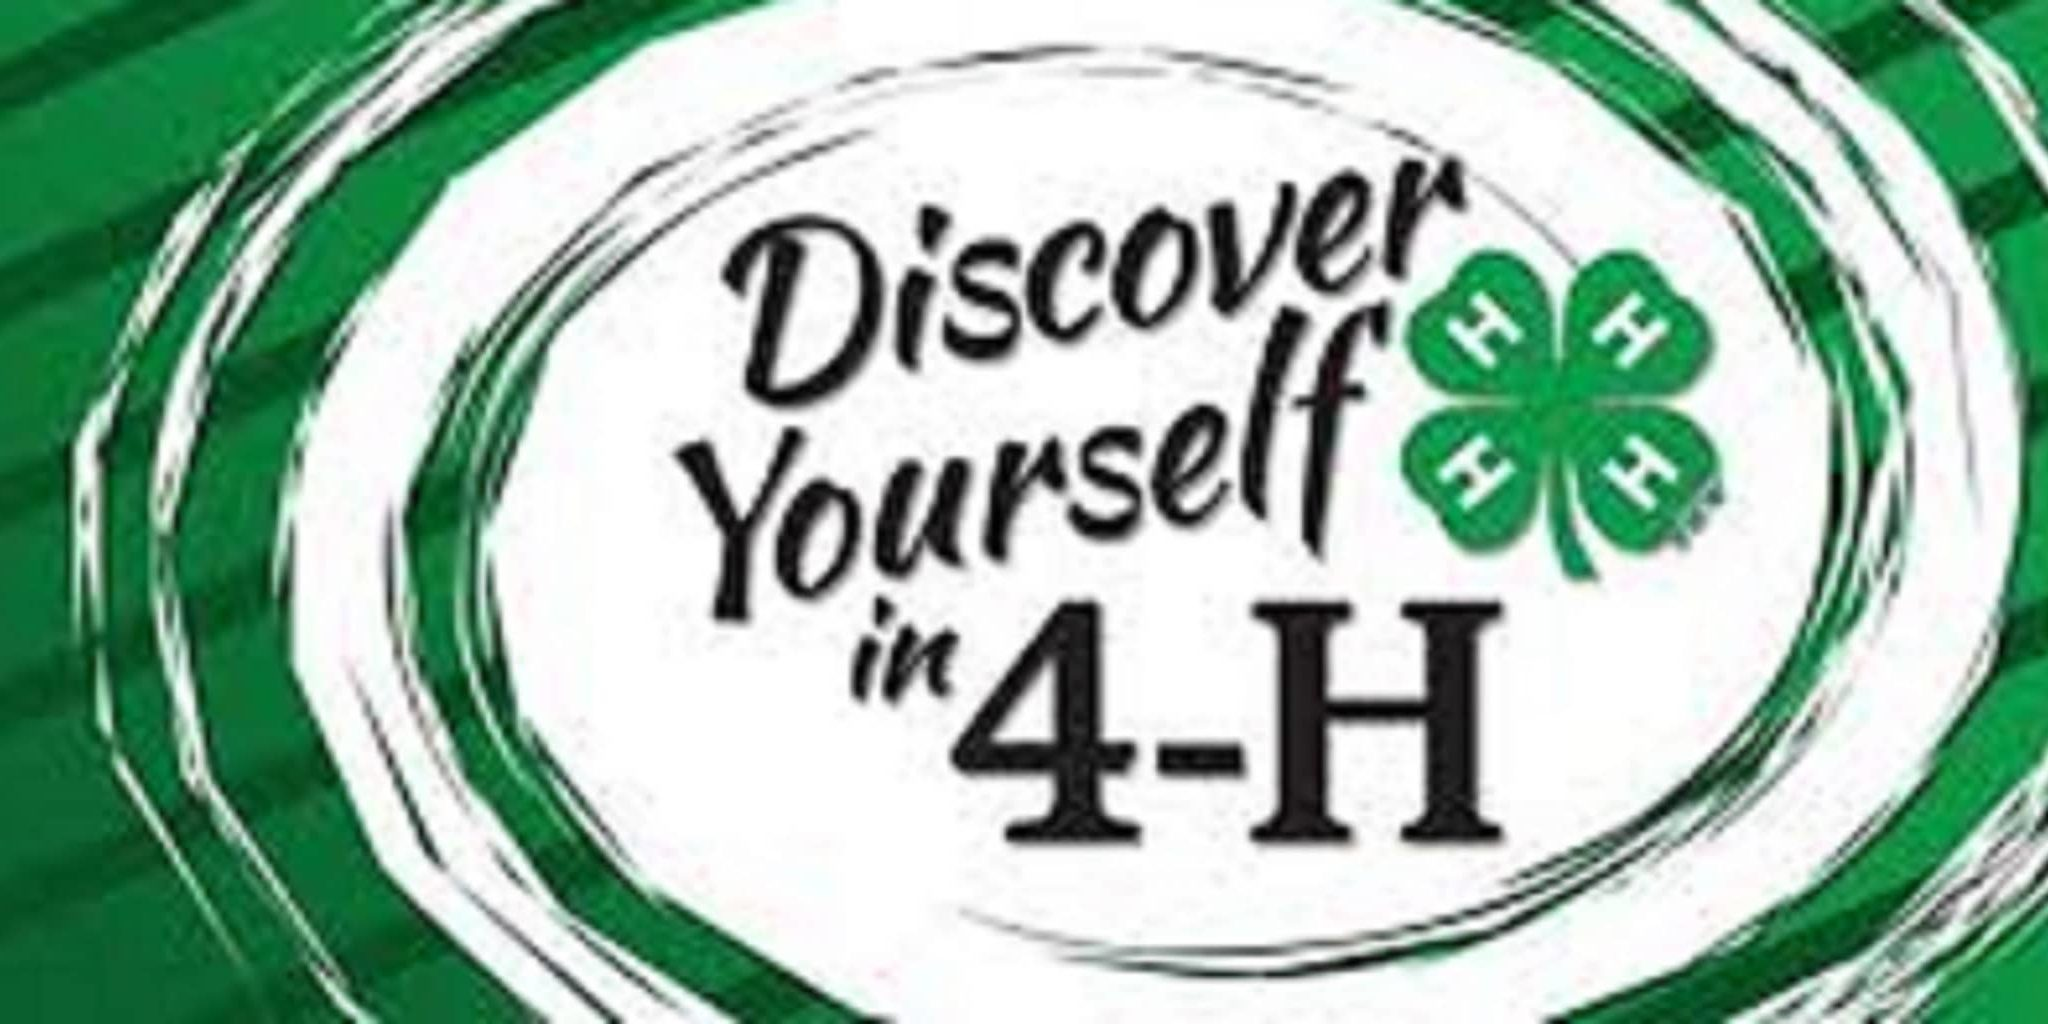 discover 4h resize